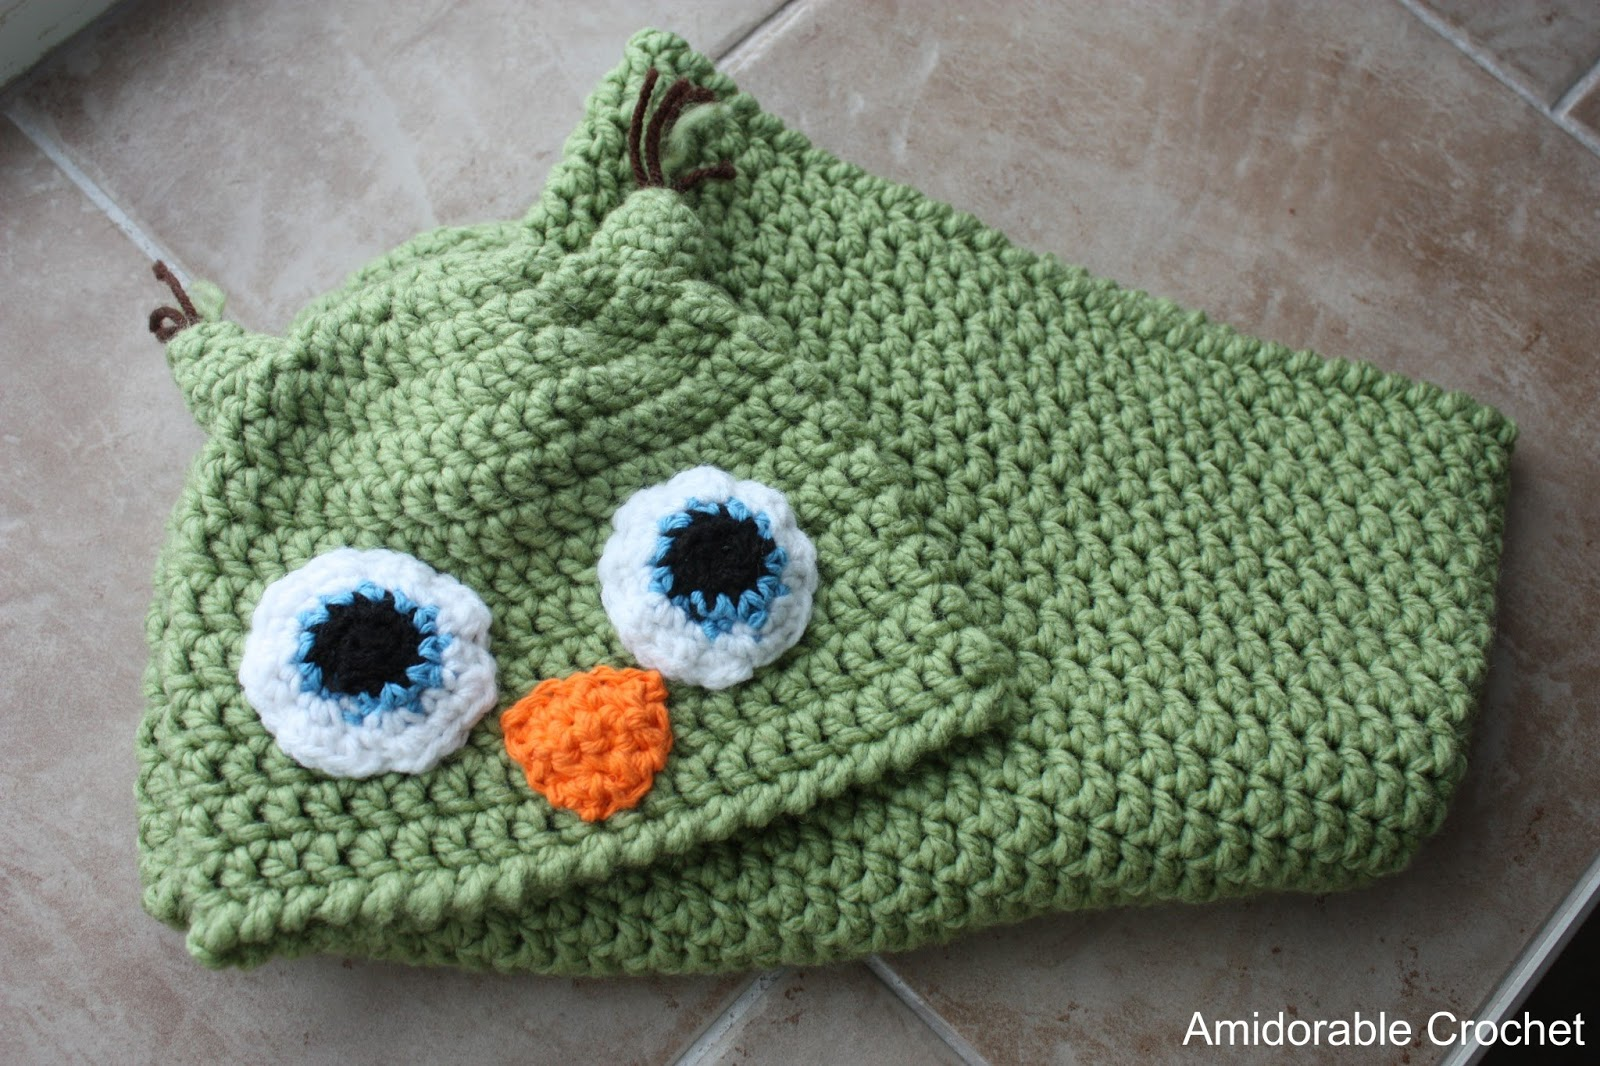 ... crocheting pattern from The Daily Crocheter :). It?s the Baby Owl